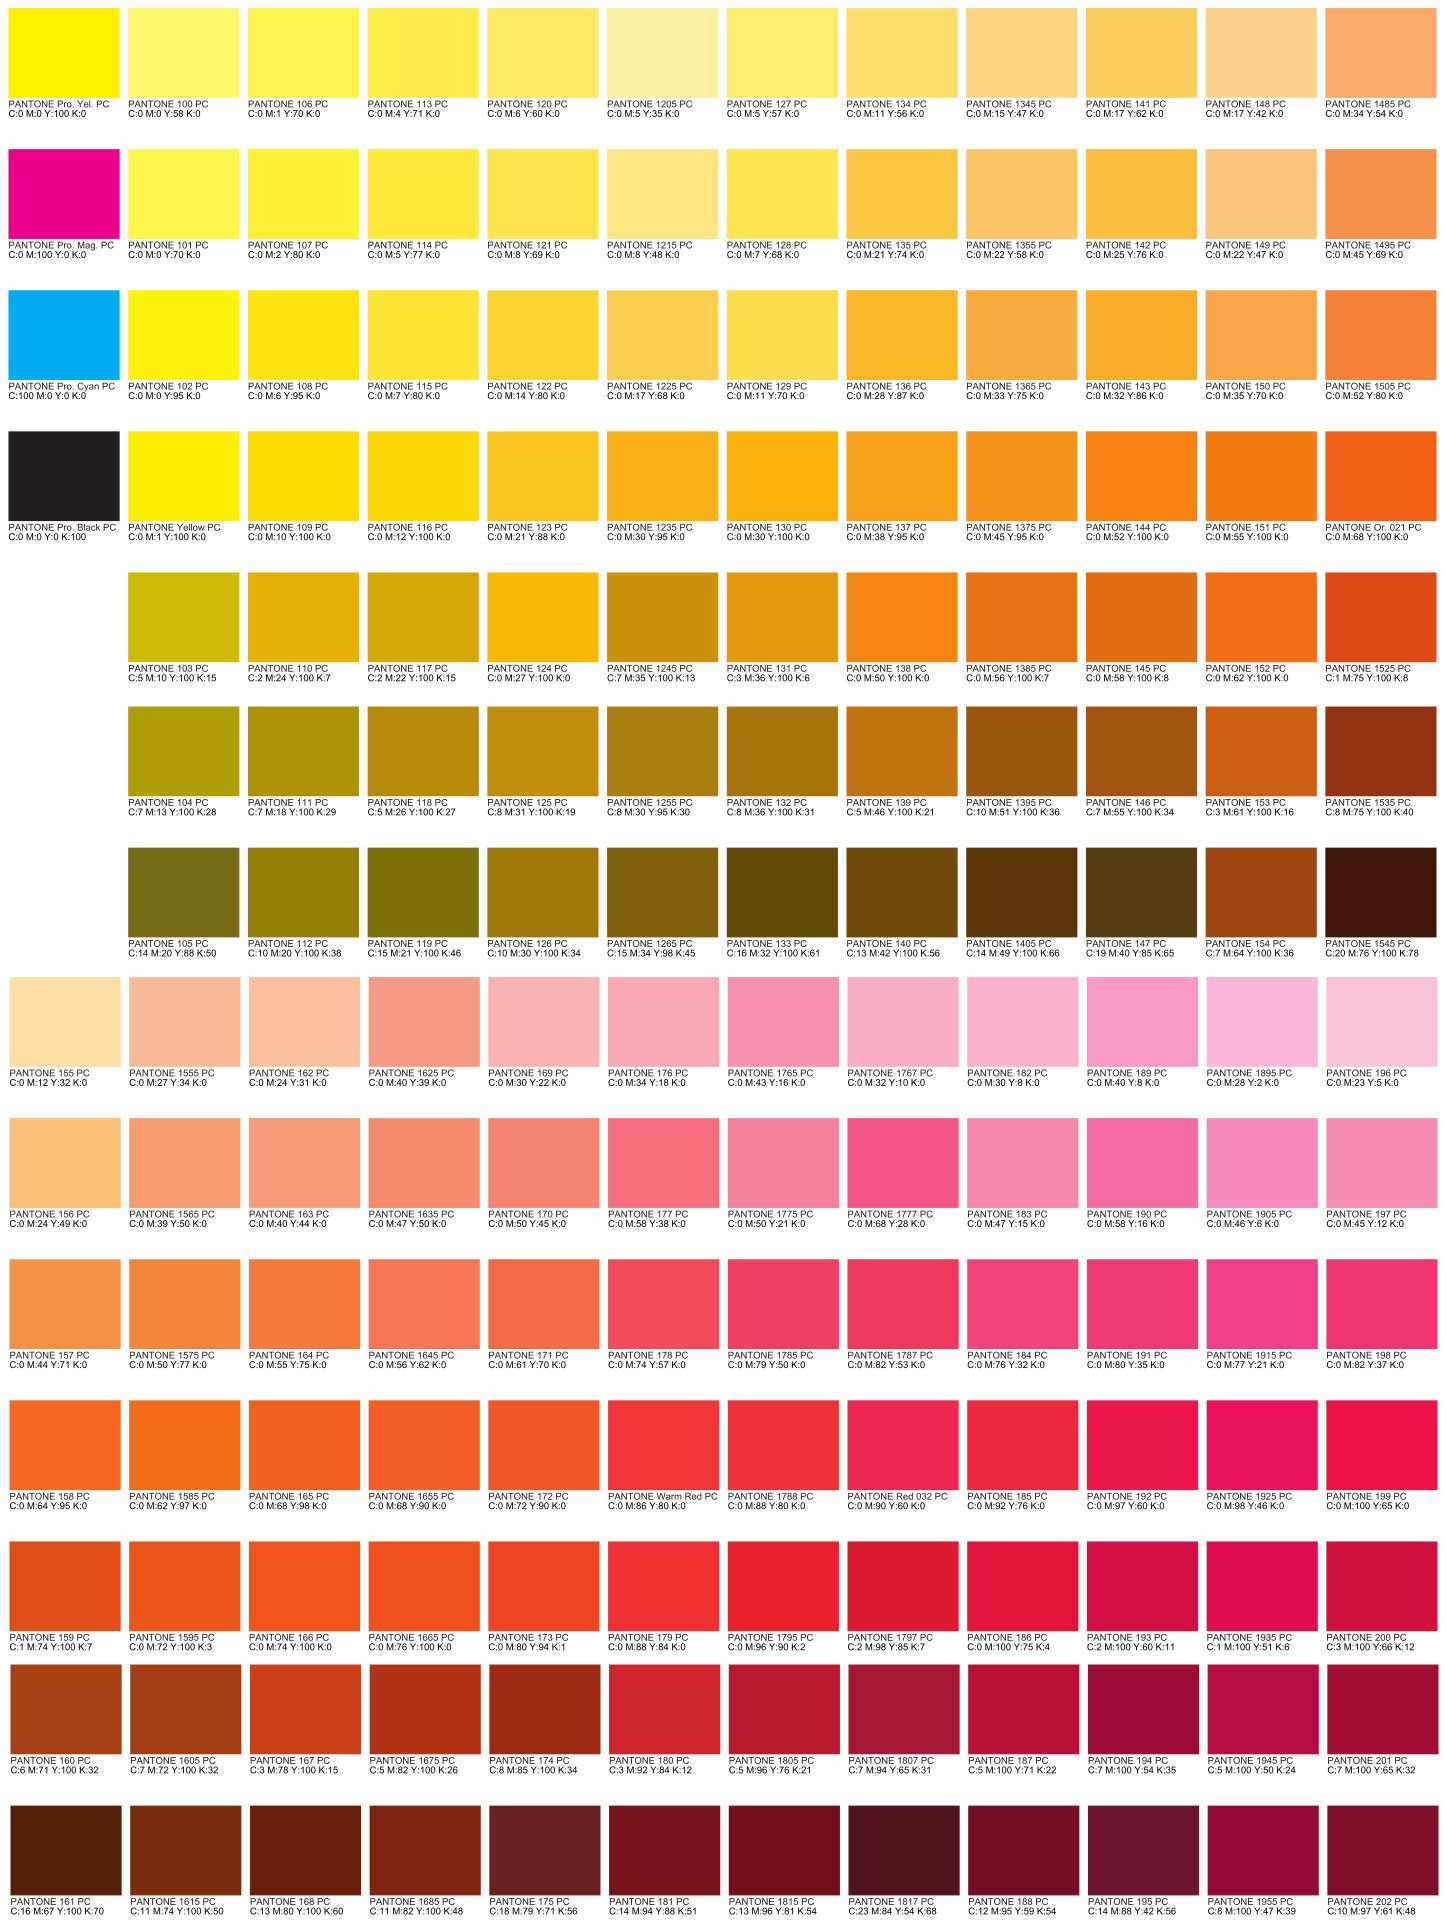 cmyk color code charts love my job pinterest adobe indesign graphic design inspiration